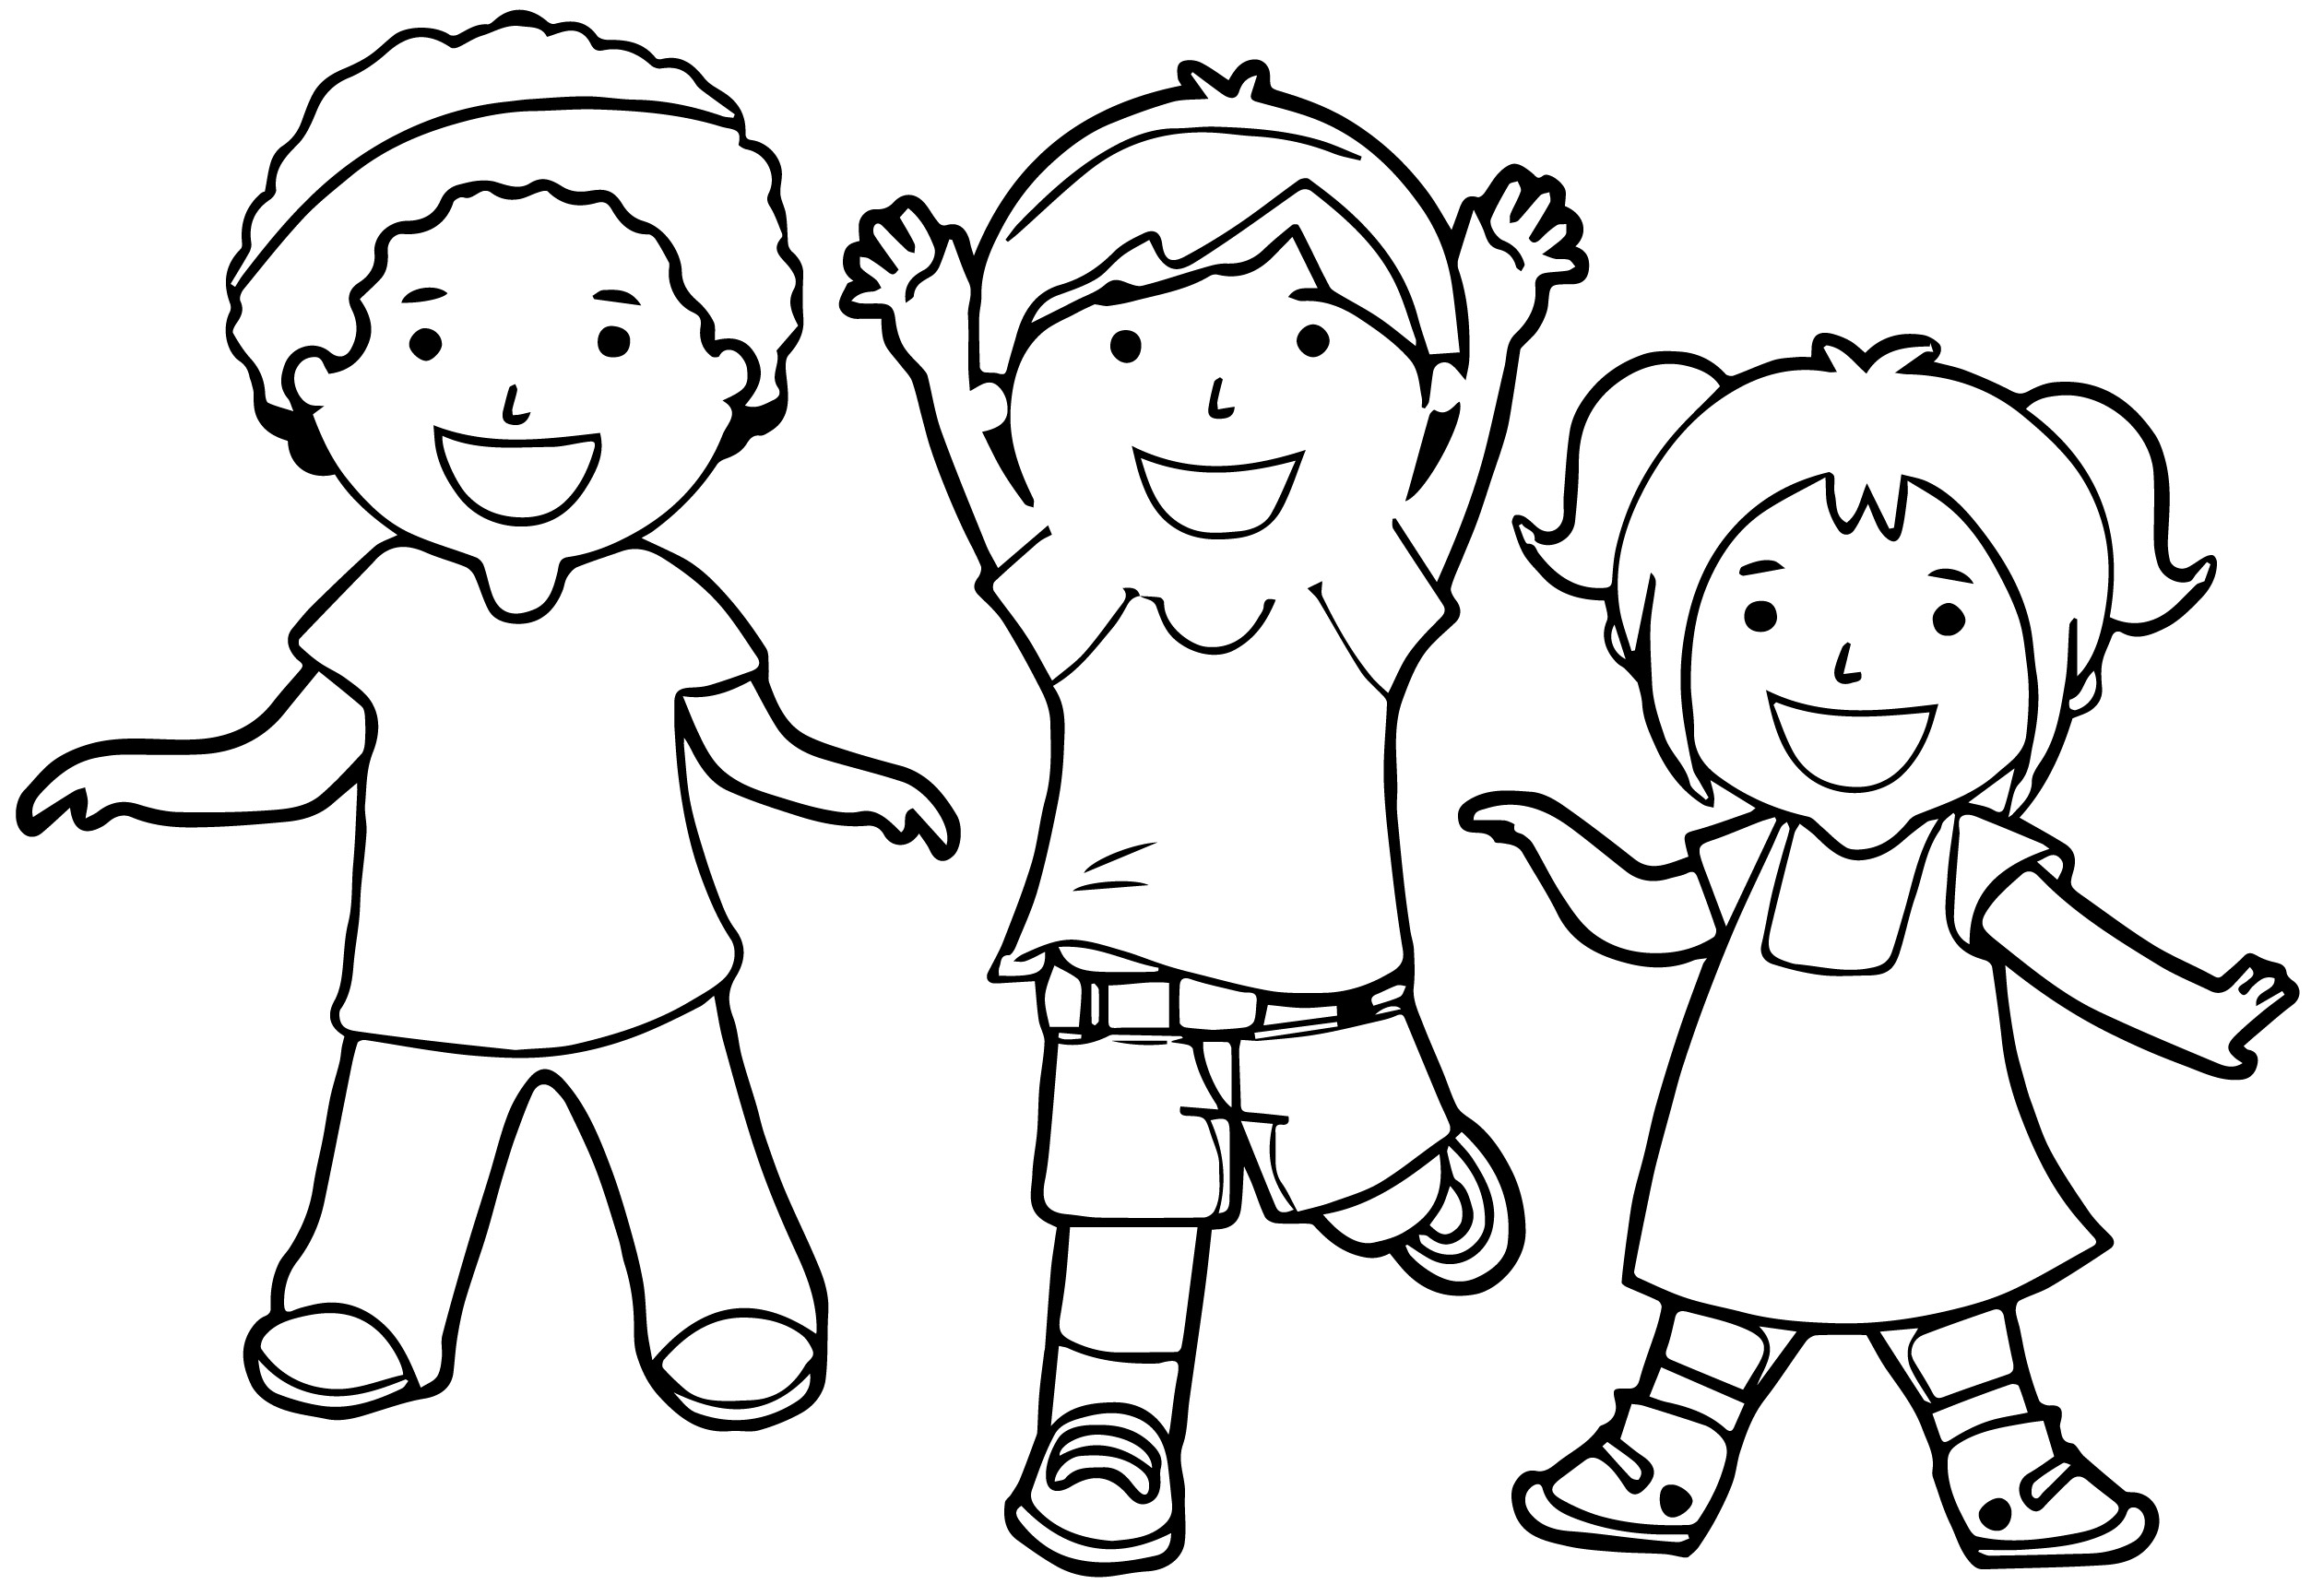 kids coloring together family drawing for preschoolers at getdrawings free download coloring together kids